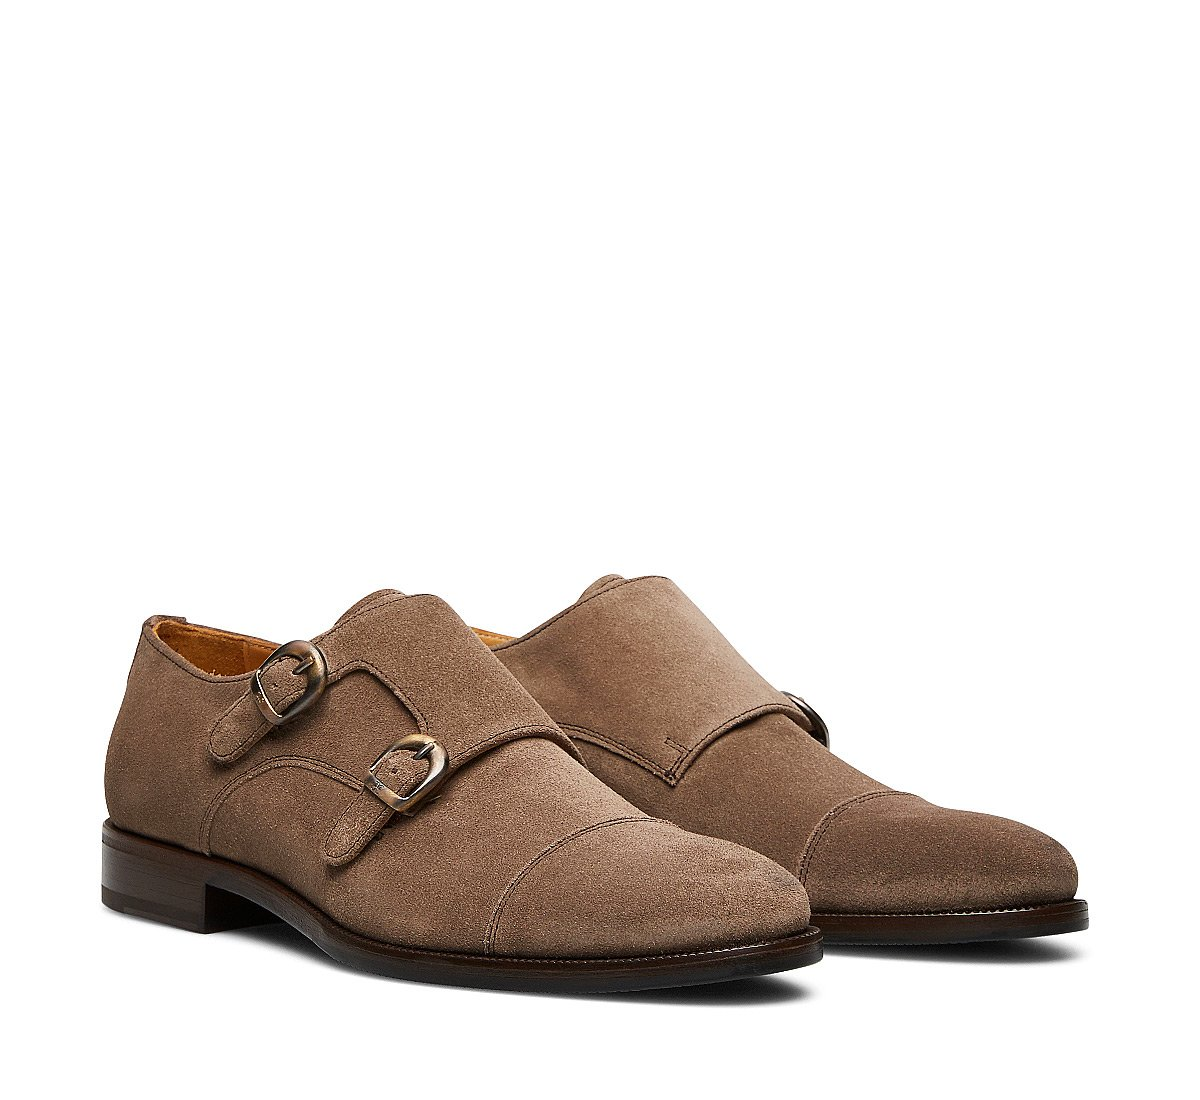 Double monk strap suede shoes